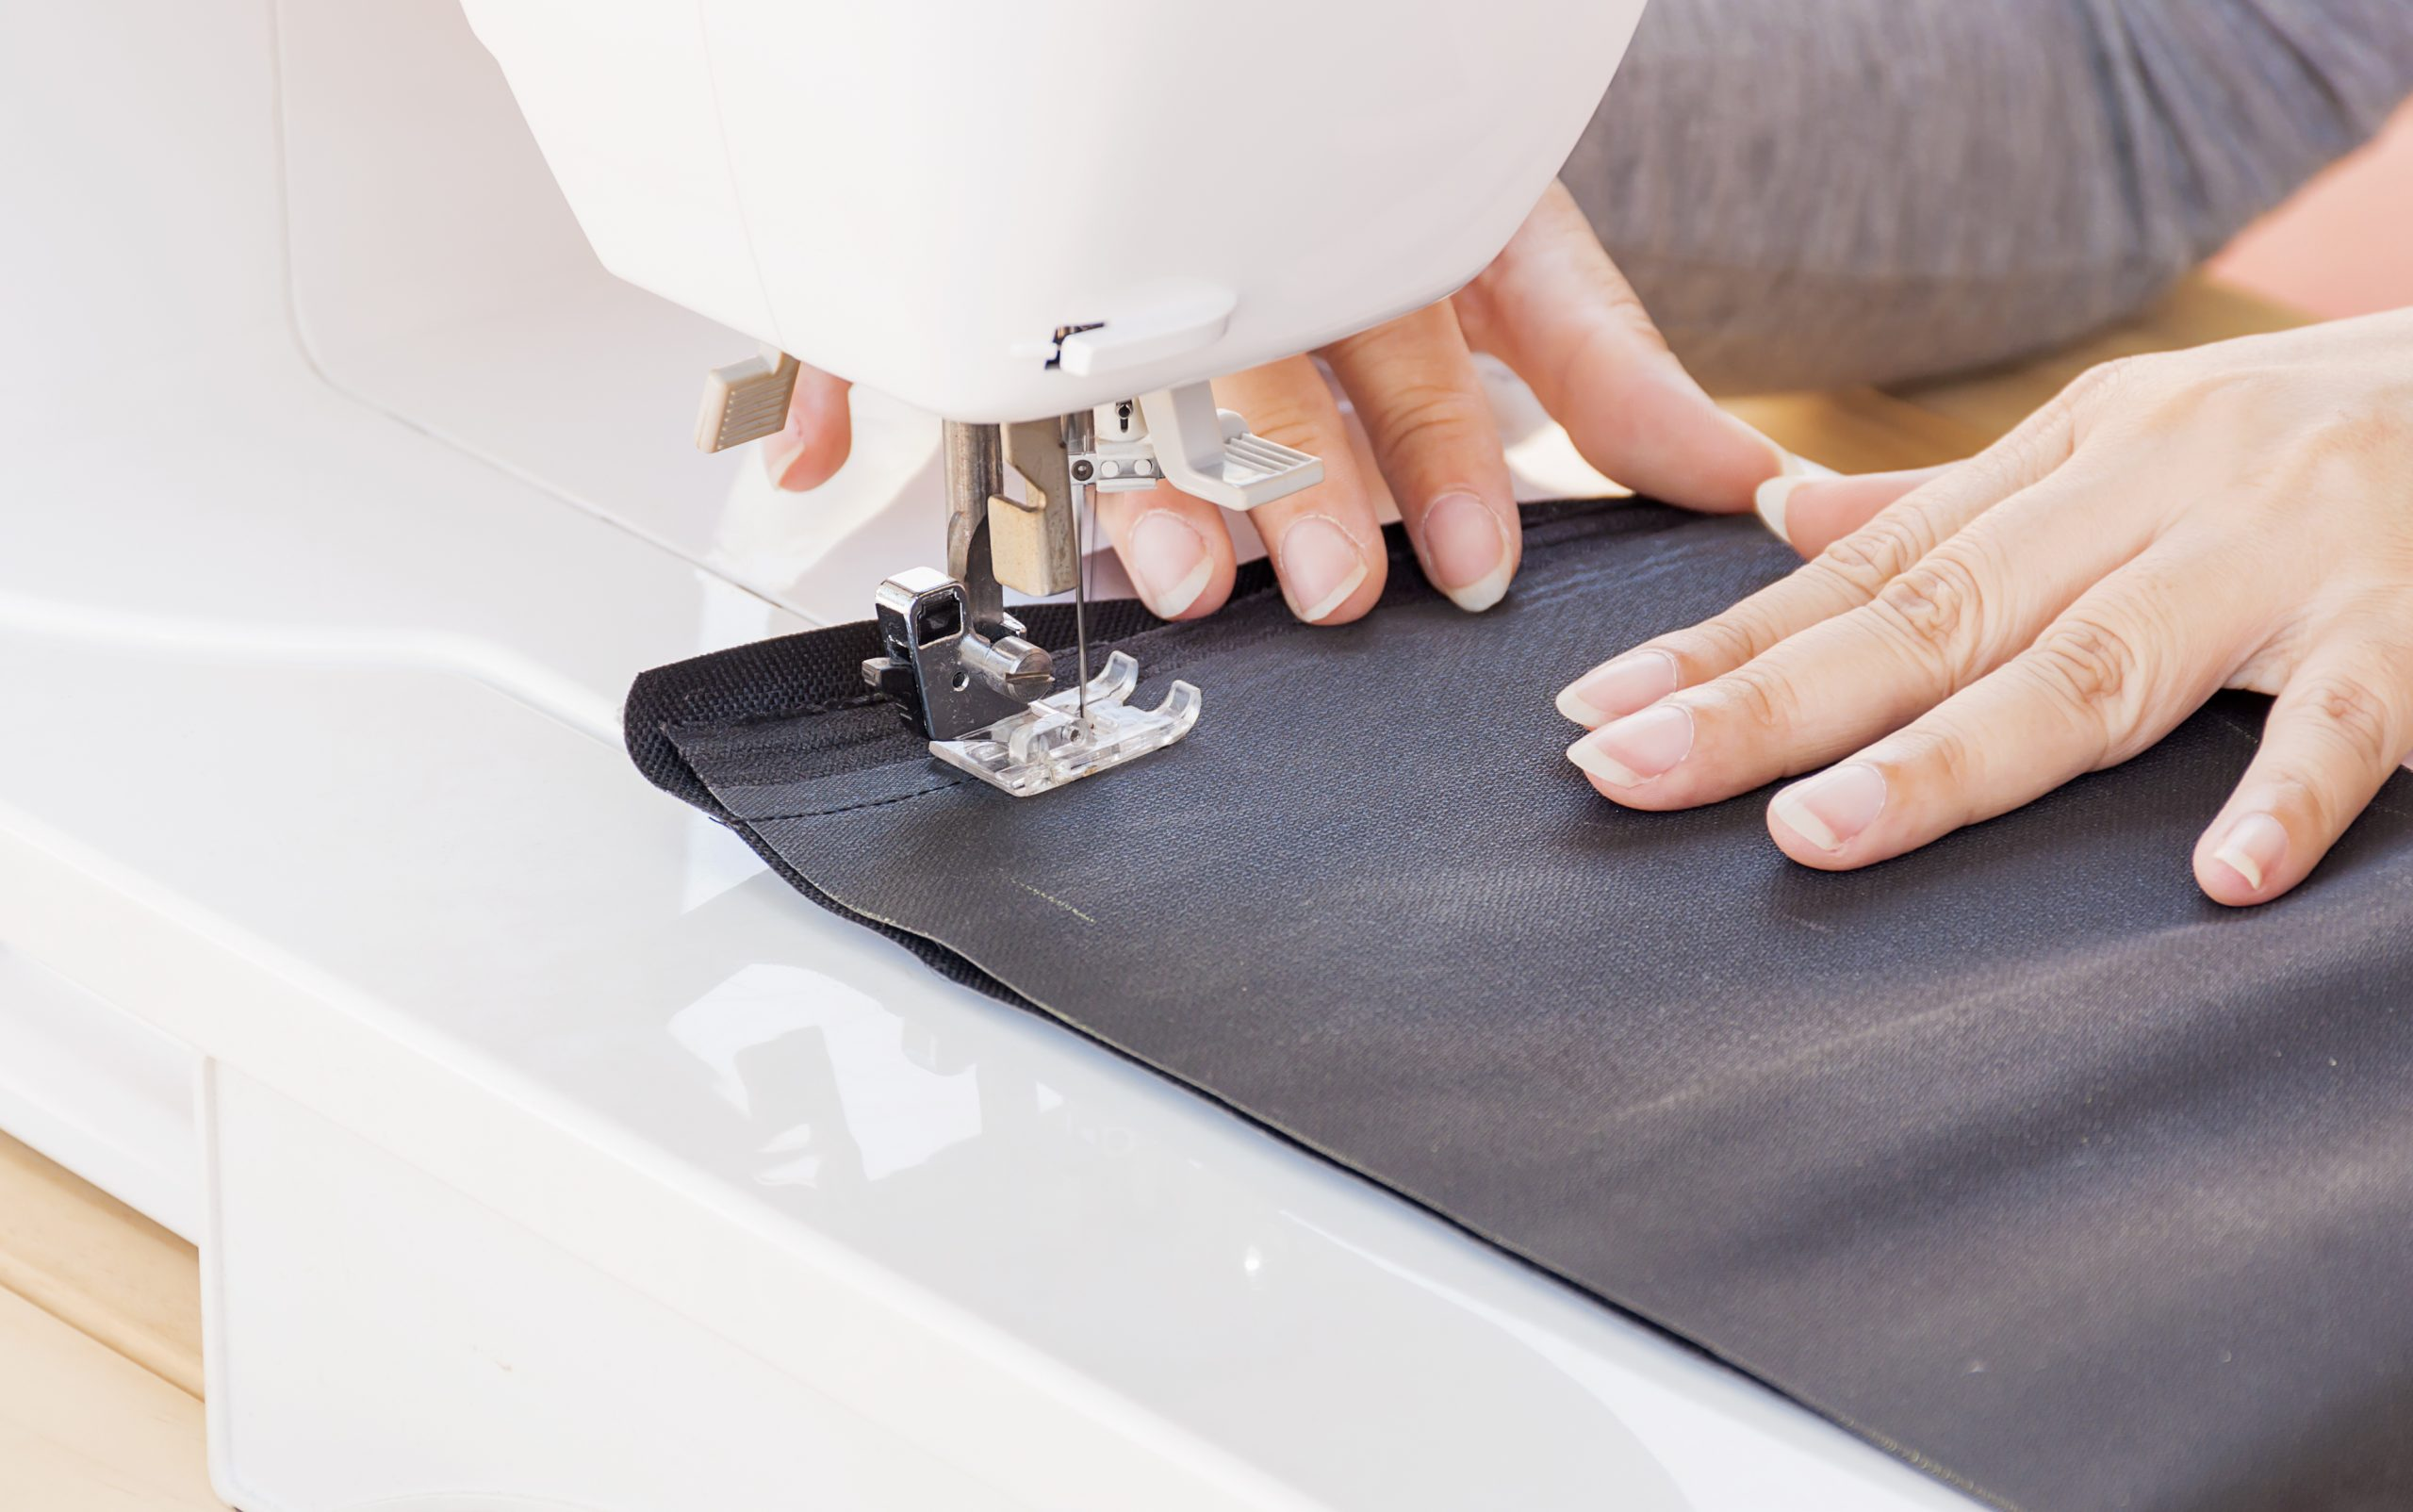 Woman's hands, doing her patchwork using sewing machine